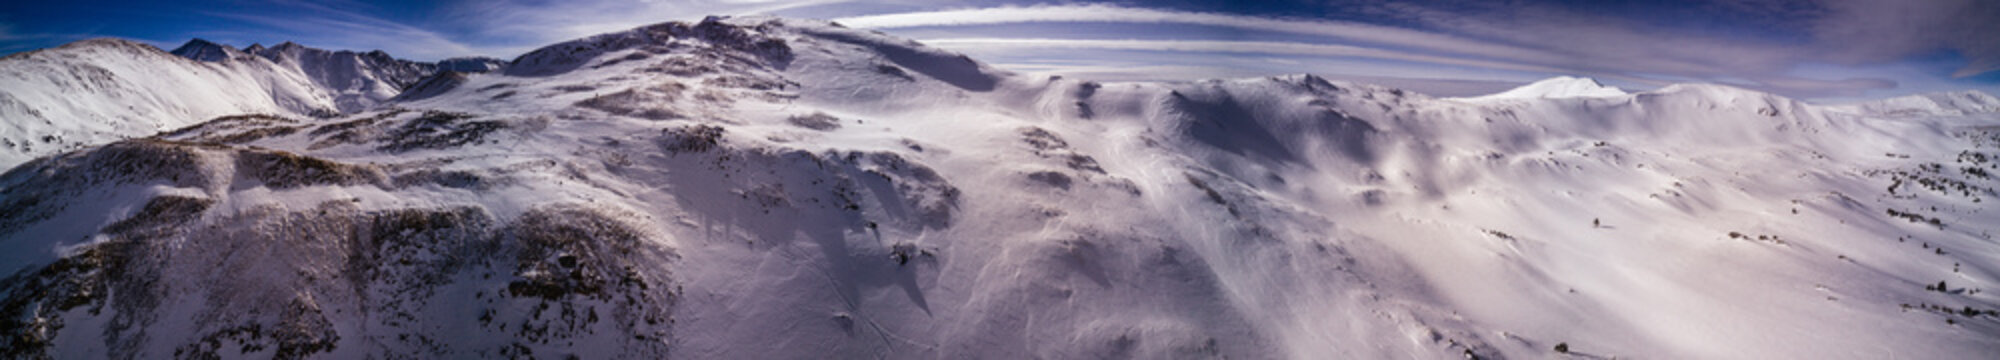 Aerial drone photograph of fresh snow after a winter blizzard in the Colorado Rocky Mountains.  Taken near Loveland Pass